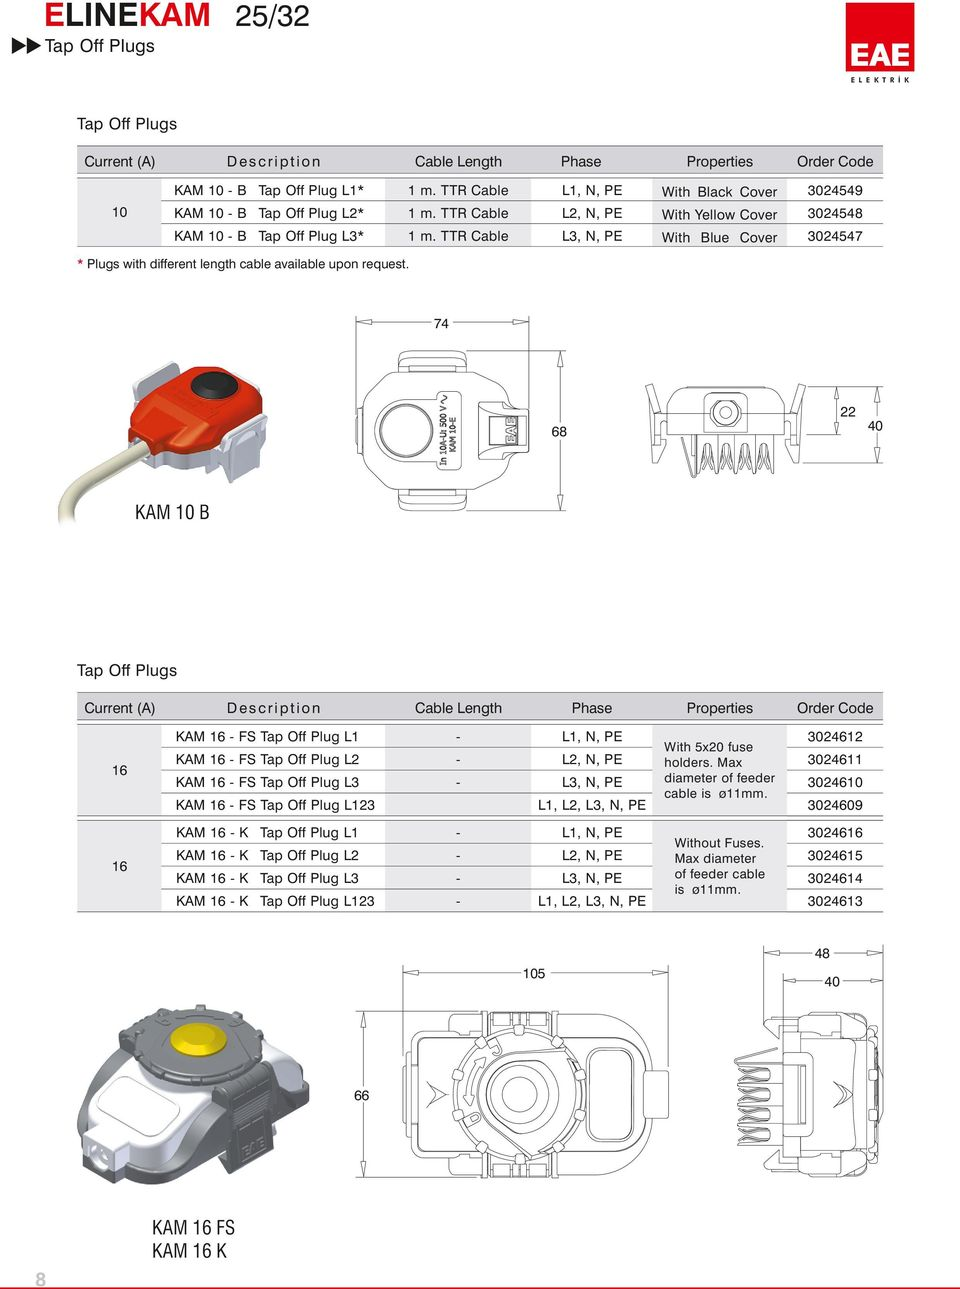 Kam A Lighting Busbar System Kap Plug In Distribution Wire Light Switch Uk L1 L2 L3 Ttr Cable N Pe Plugs With Different Length Available Upon Request